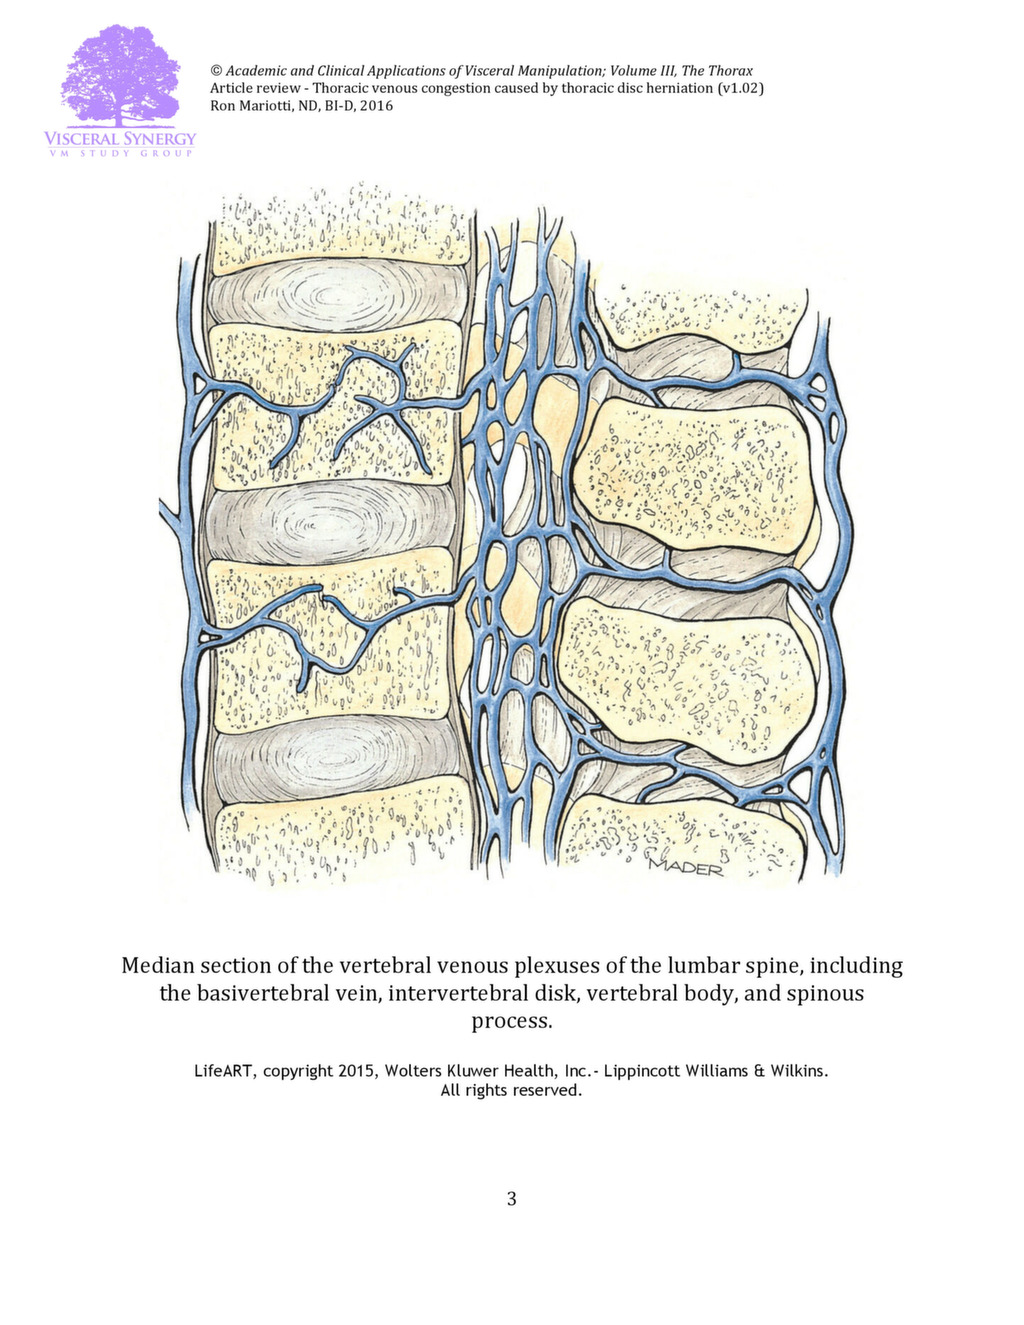 5 things you need to know about thoracic disc herniation! - VM Study ...